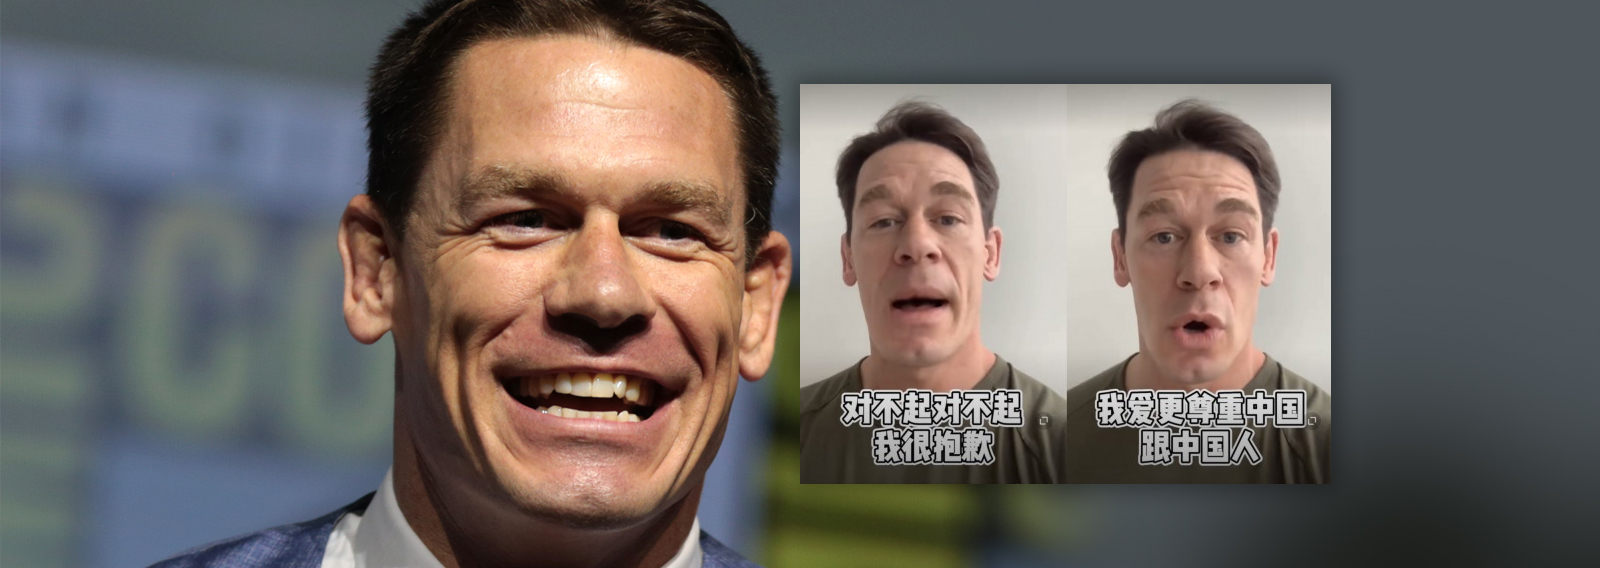 John Cena's Apology Is a Symptom of a Greater Problem: The CCP's Power Over Hollywood